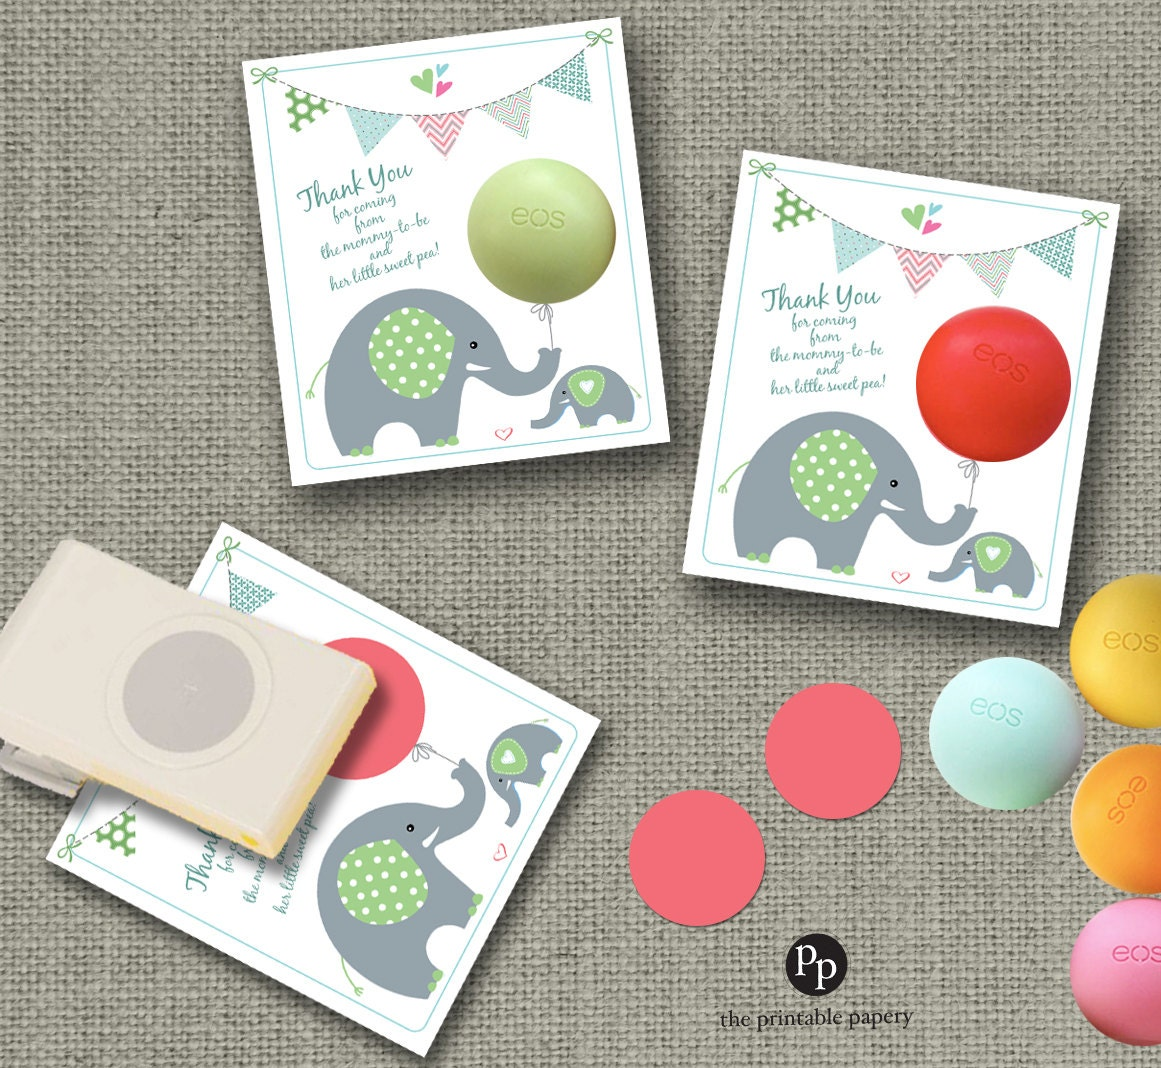 Baby Shower Party Favors For Eos Lip Balm Thank You Gift